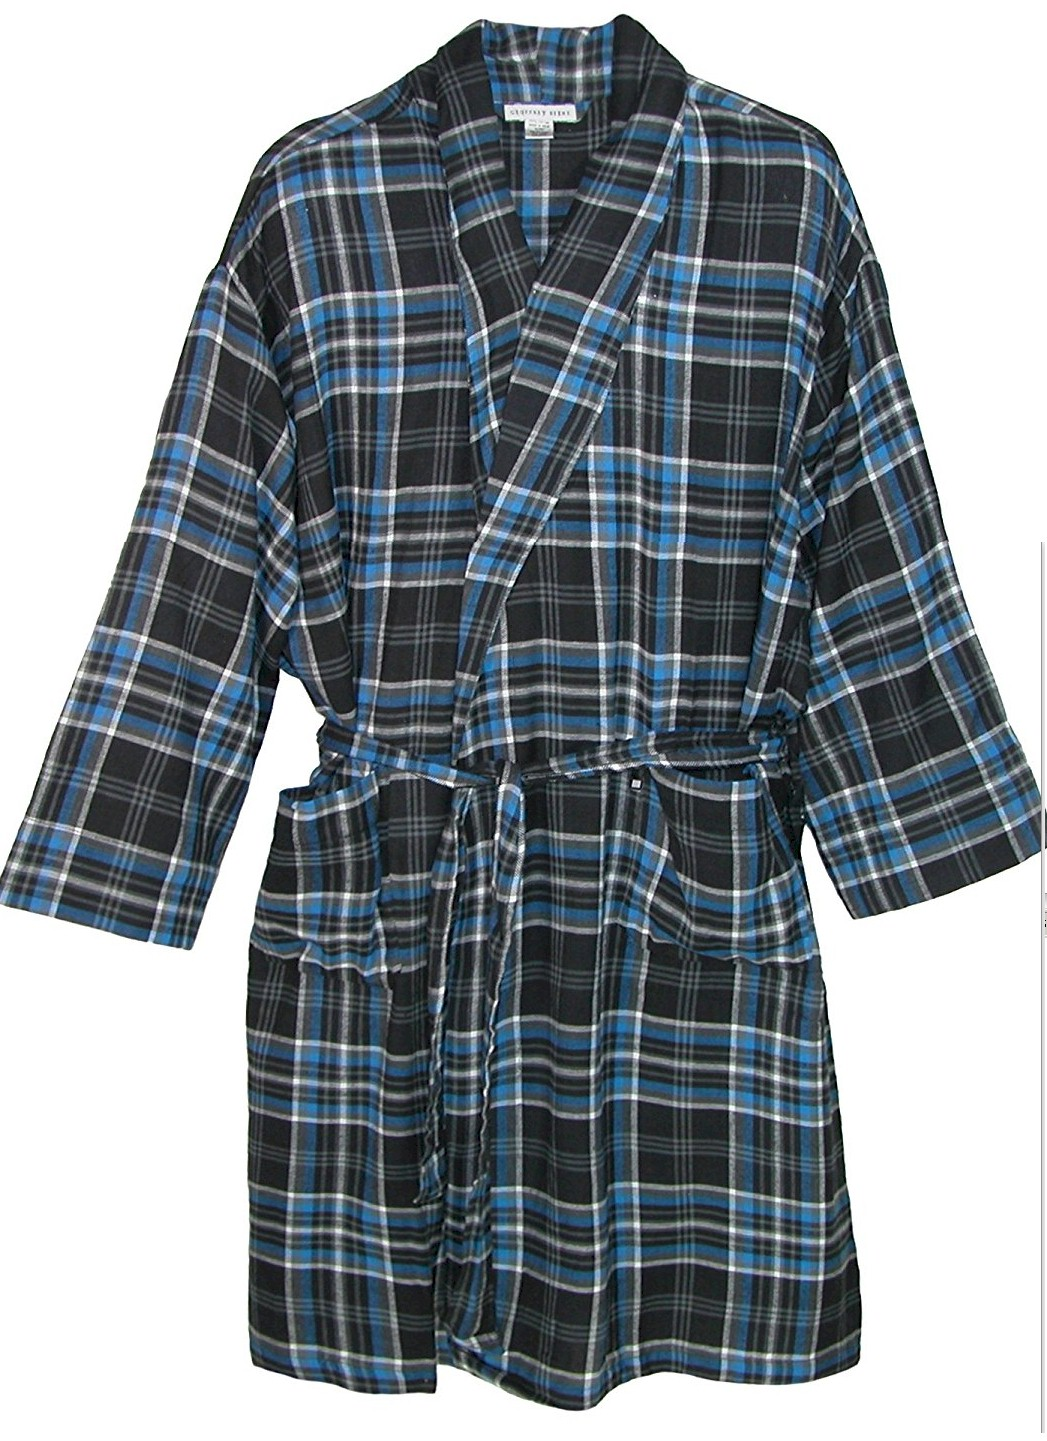 #351292. 3XL TALL. MULTI Retail $  49.00 Robes by GEOFFREY BEENE. FLANNEL KIMONO ROBE Whs A: 18